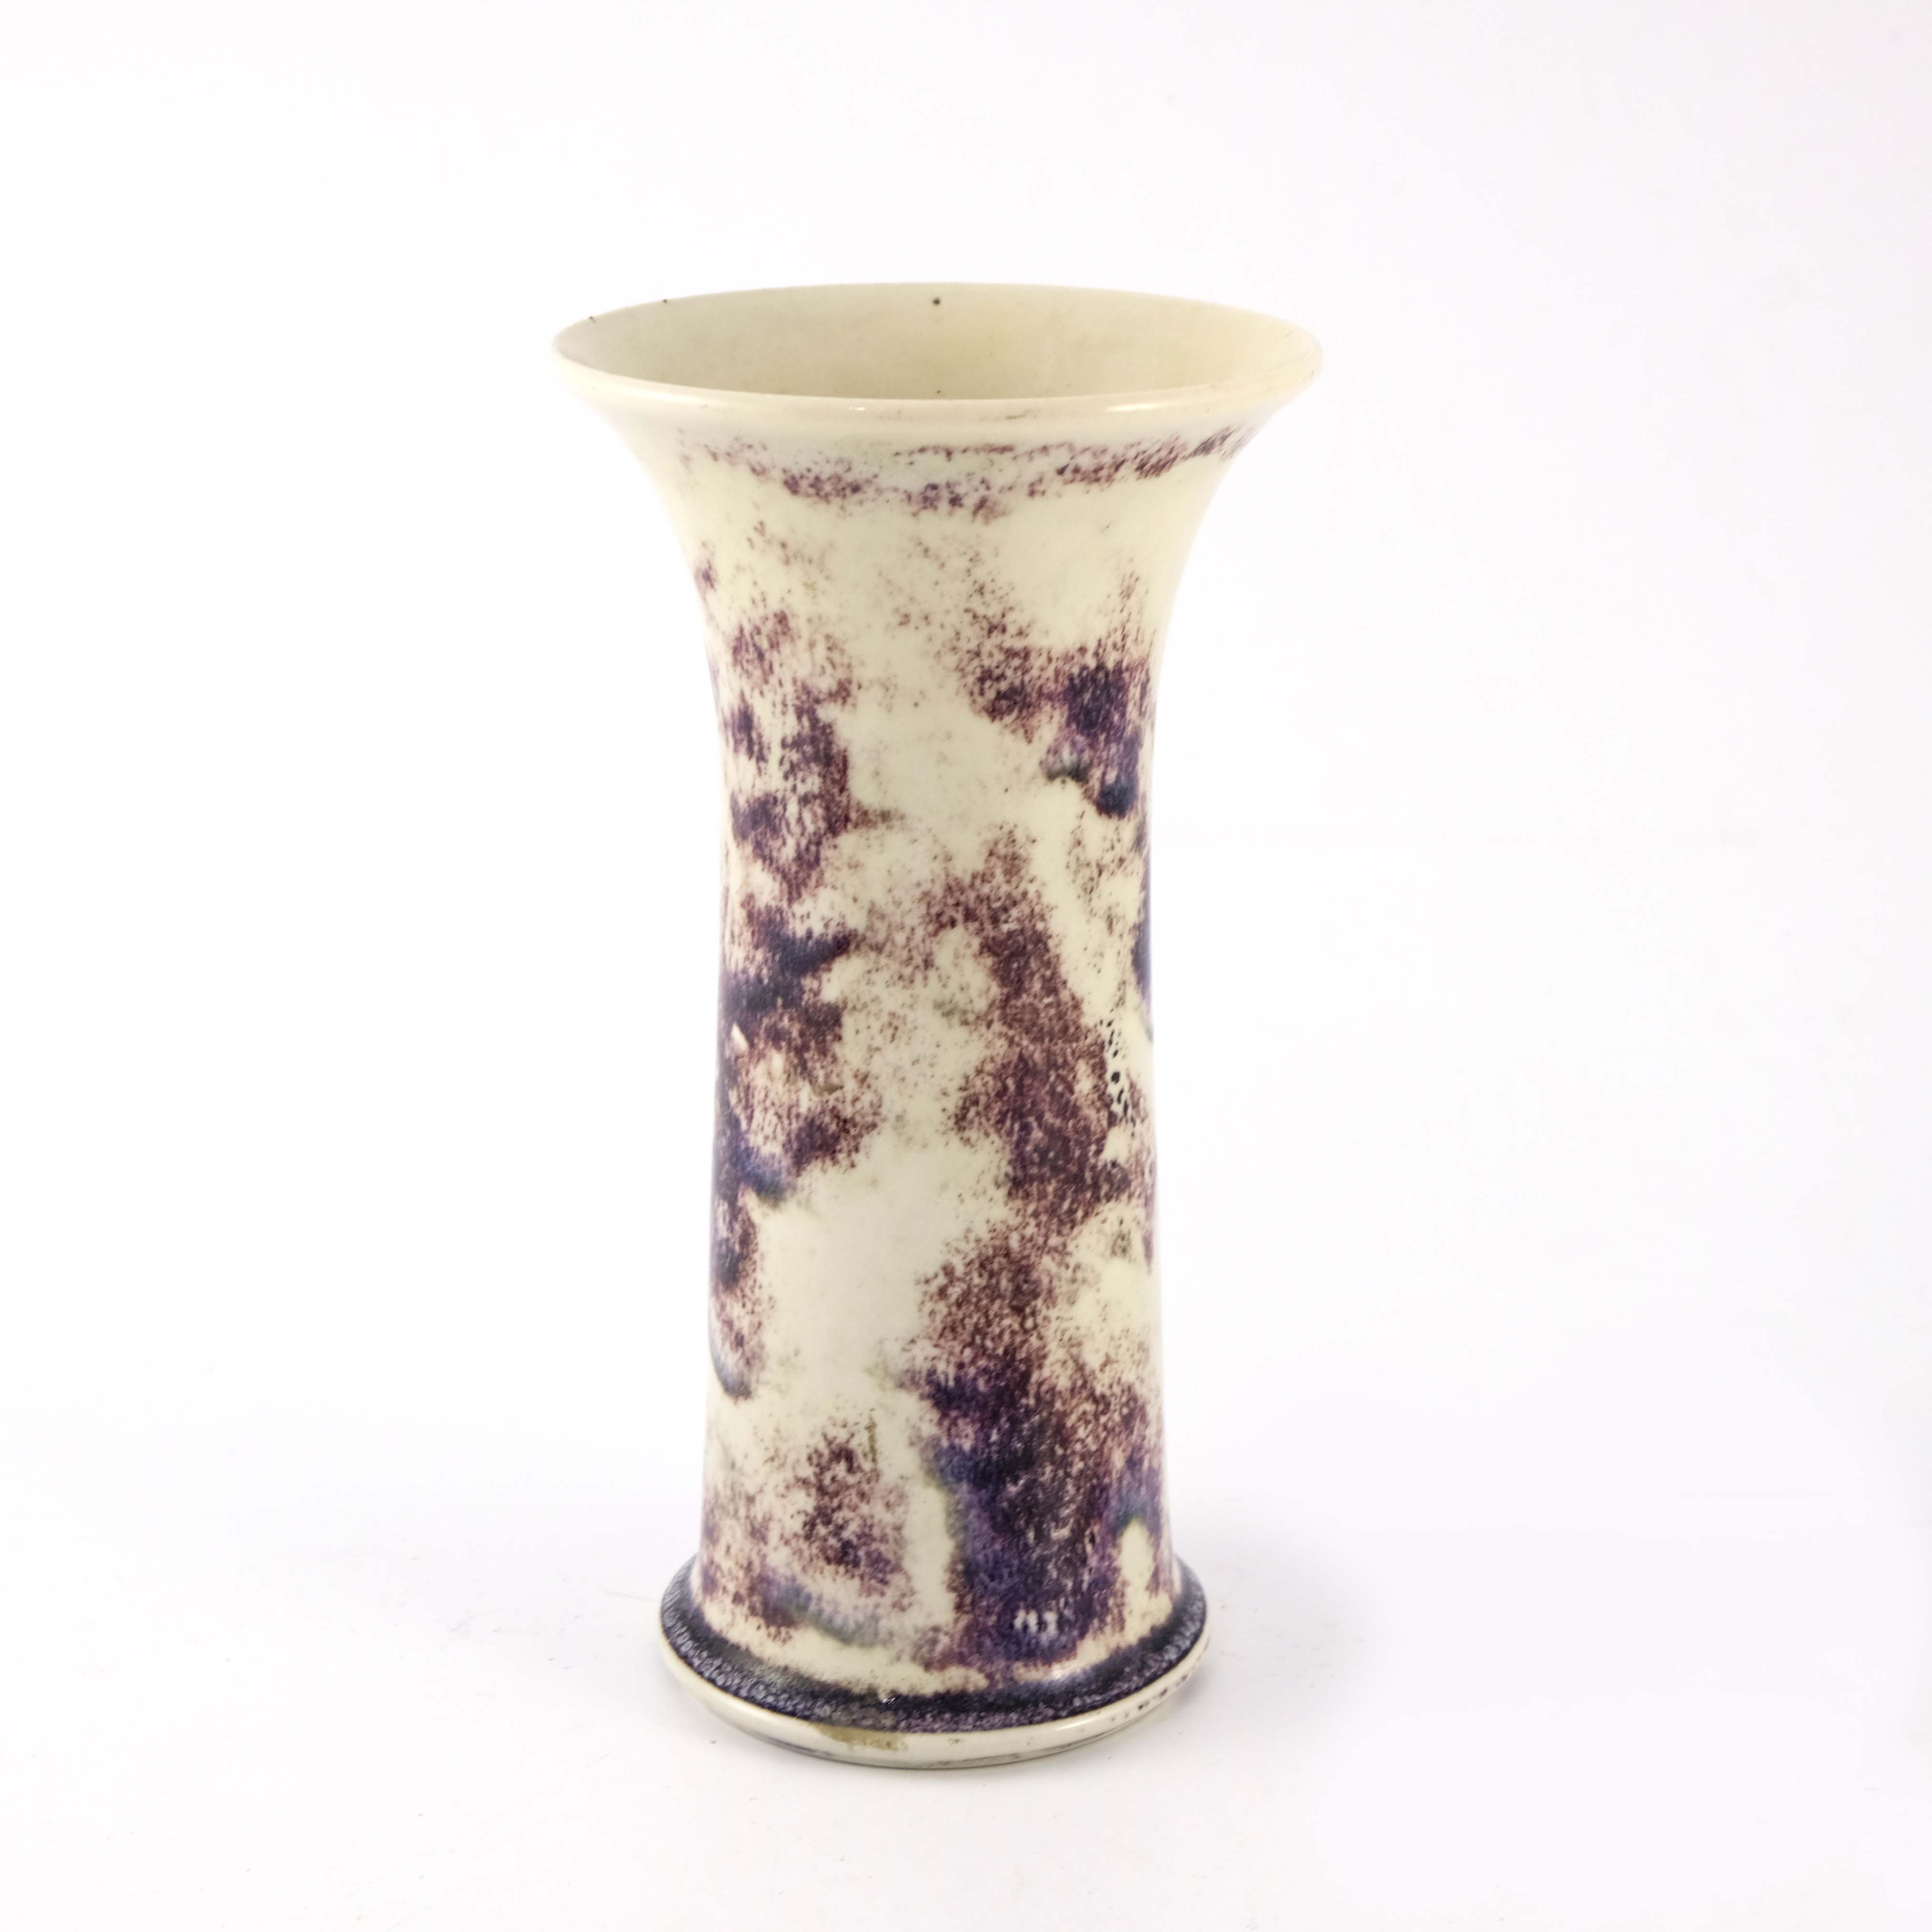 Ruskin Pottery, a High Fired Lily vase